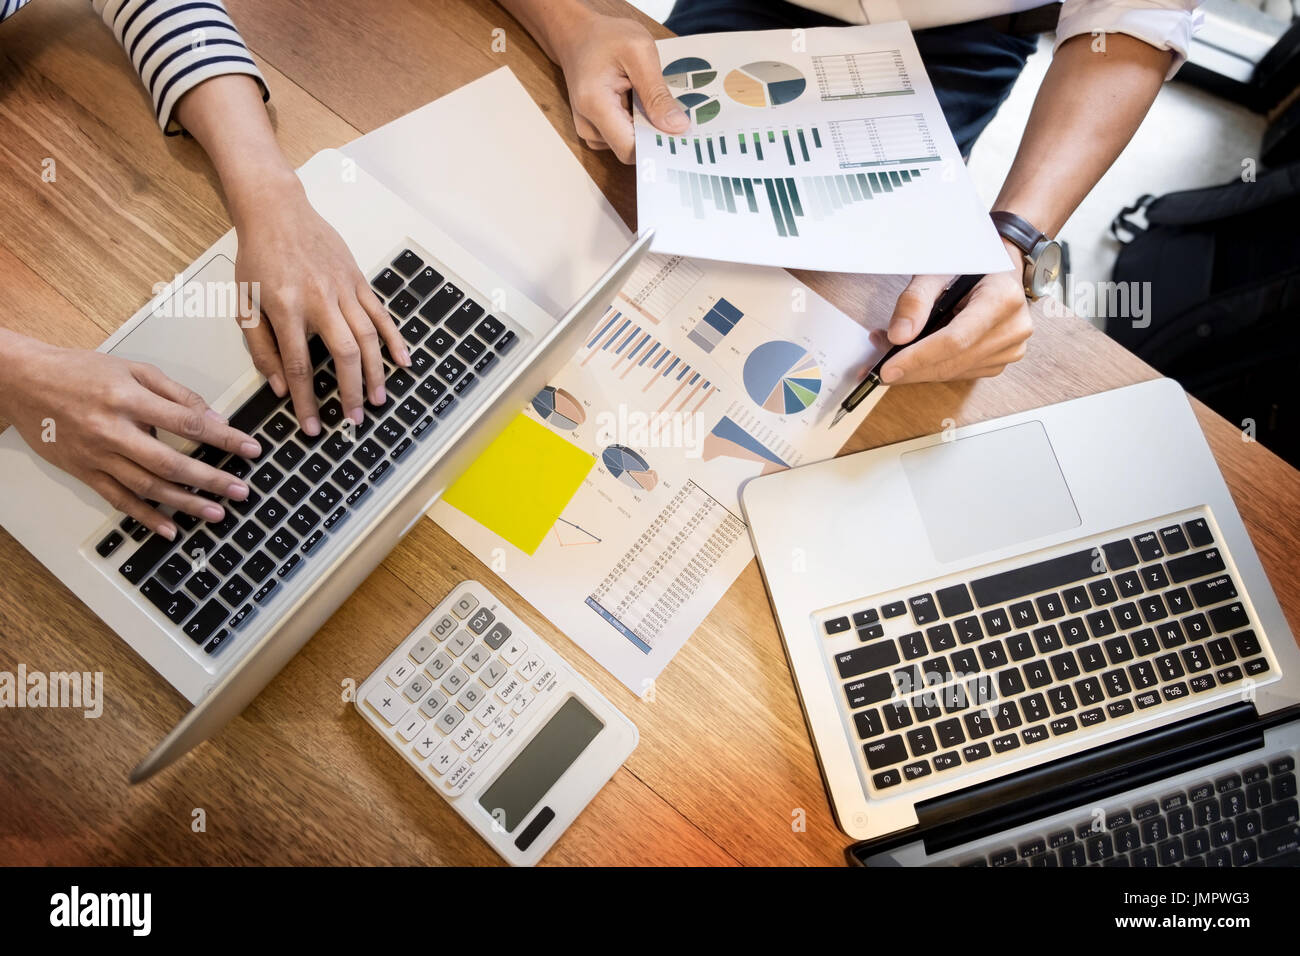 Creative Team job. young business man working with startup project analyse graph plans and discuss at  workspace office, Brainstorm meeting concept - Stock Image